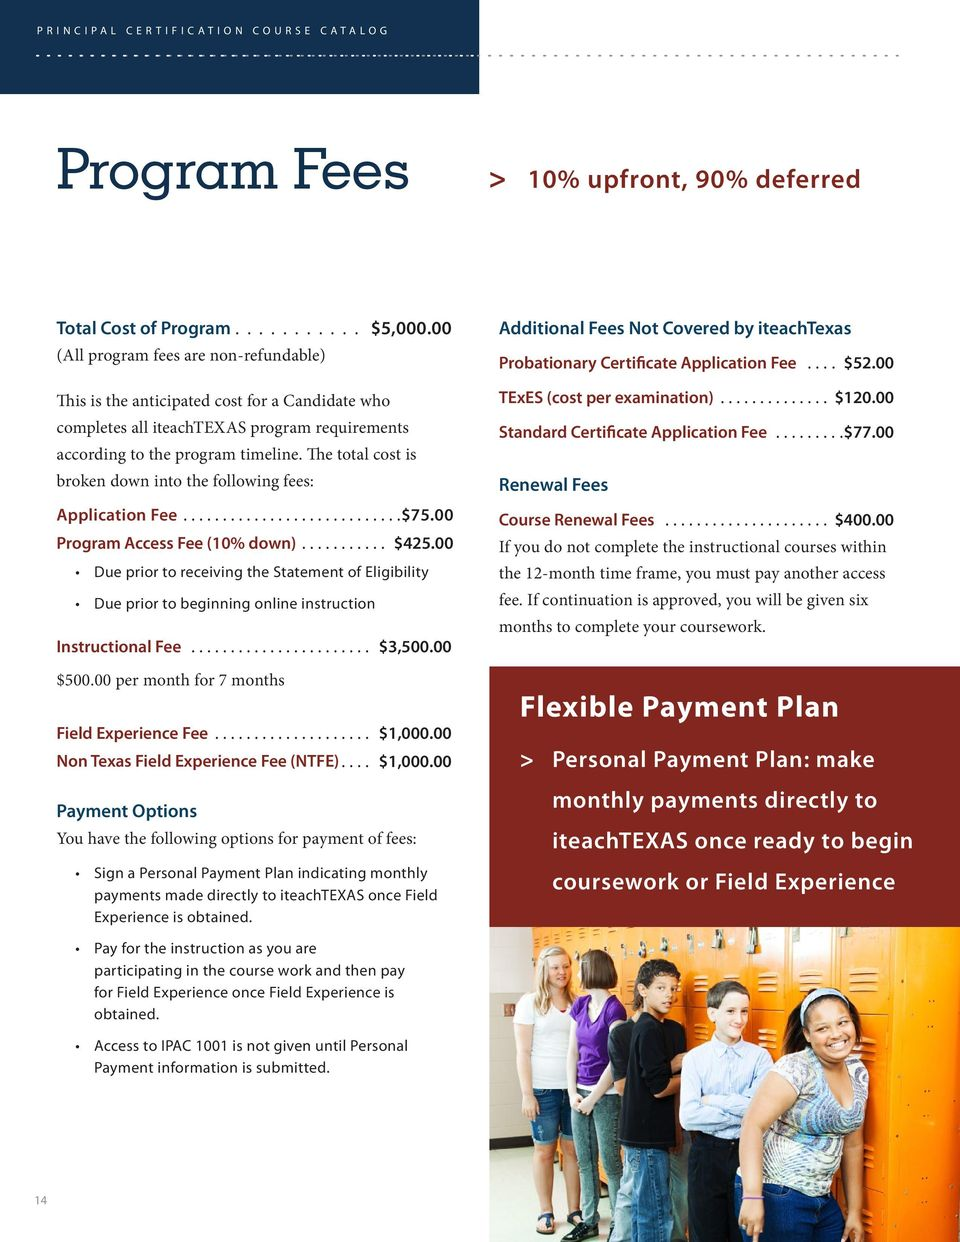 The total cost is broken down into the following fees: Application Fee...$75.00 Program Access Fee (10% down)... $425.